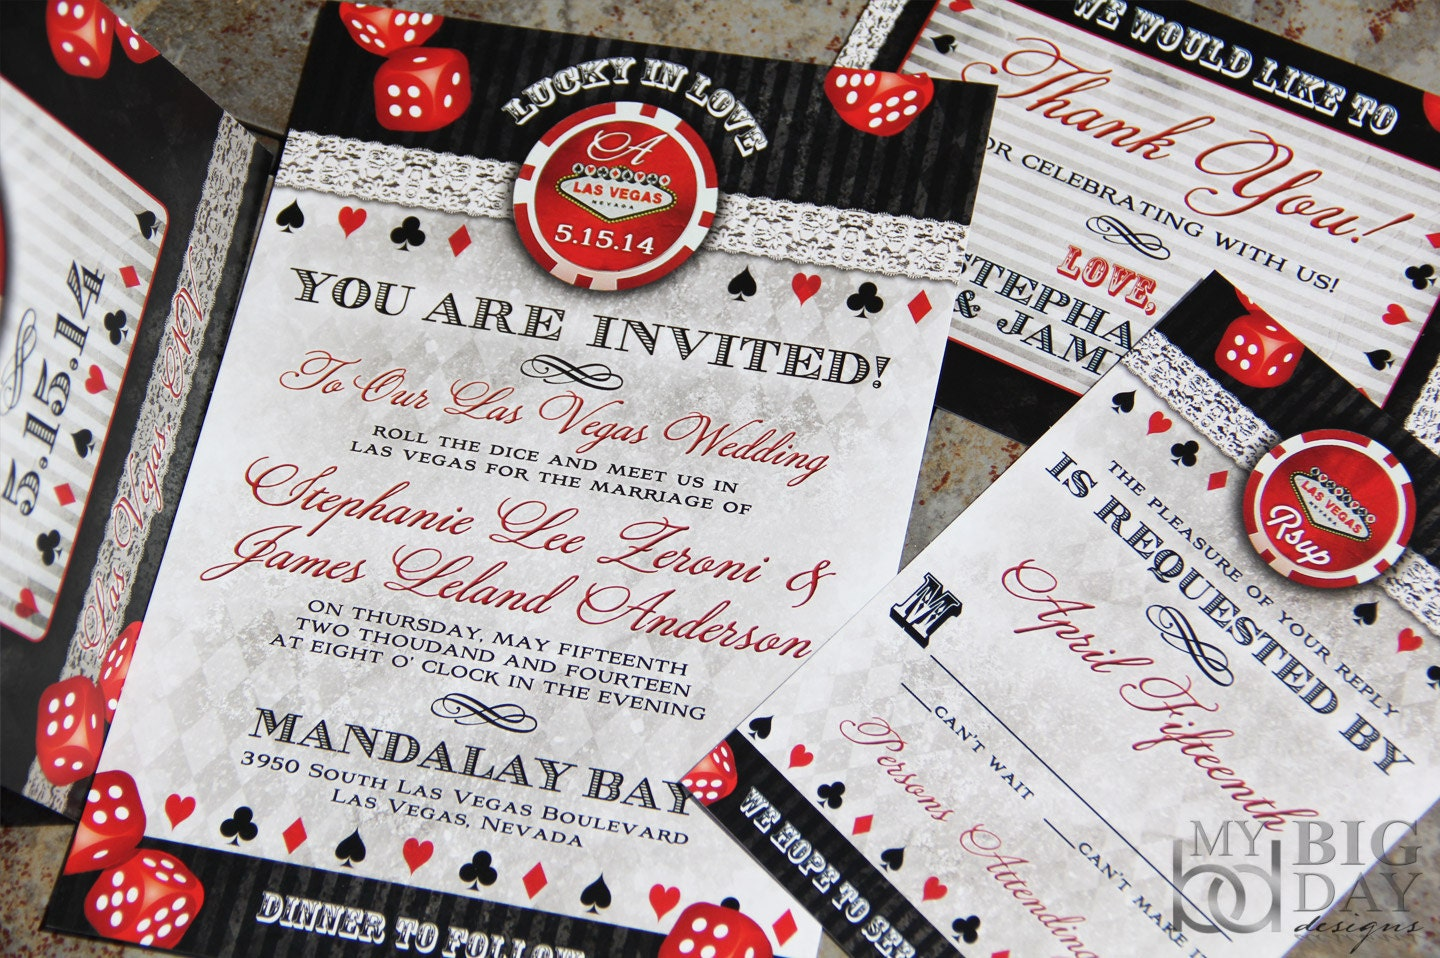 Las Vegas Wedding Invitation Wording: Lucky In Love Las Vegas Destination Wedding Invitations. Vegas